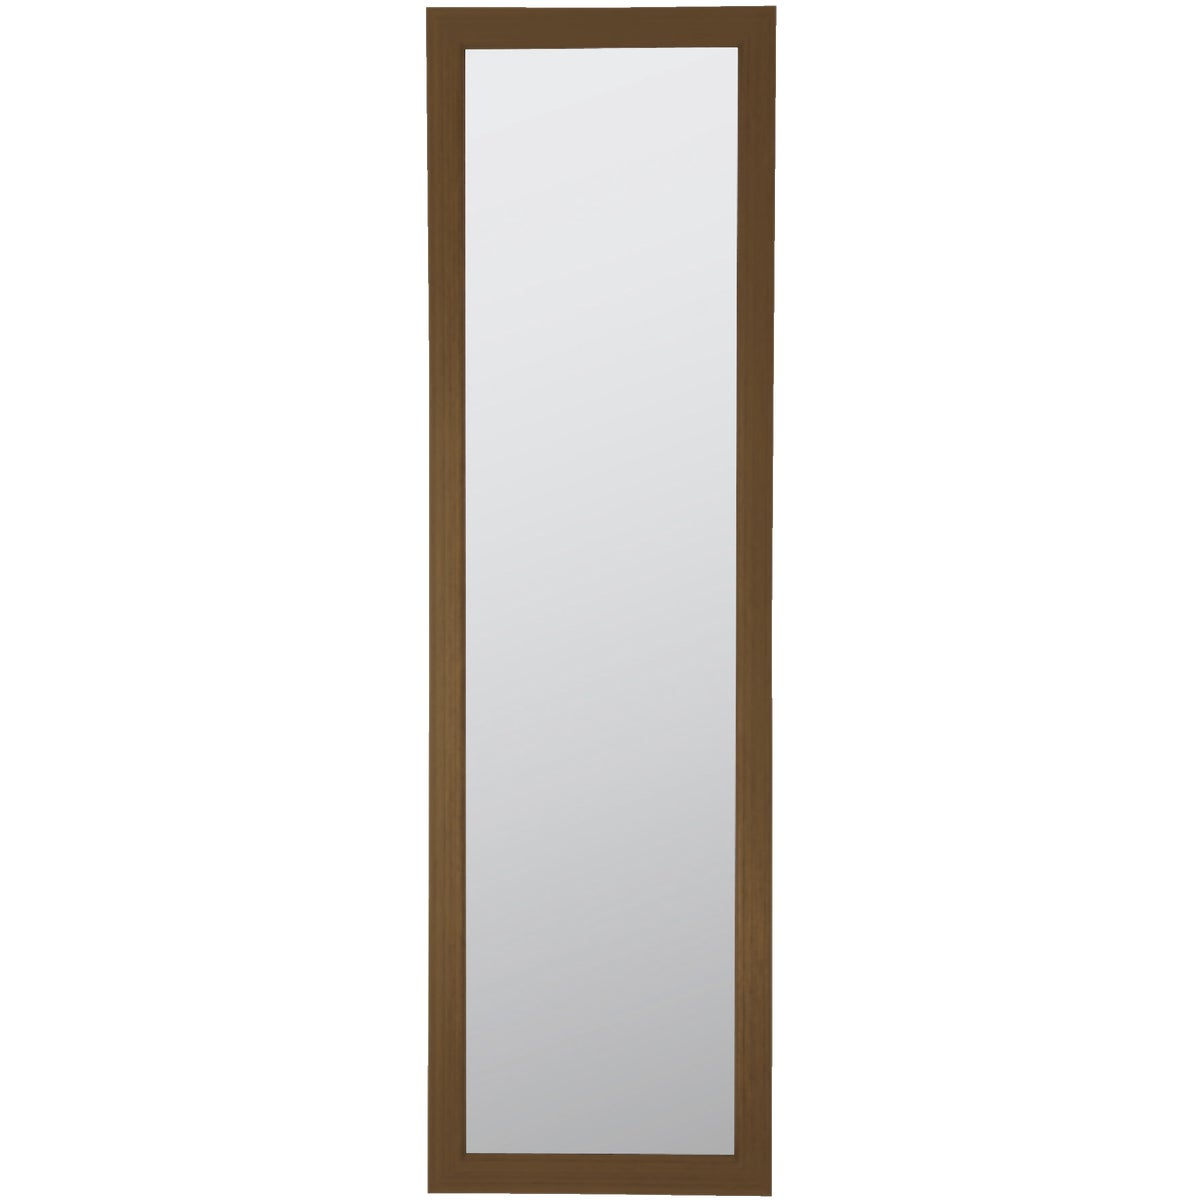 RAVEN BRZ DOOR MIRROR - 20-2487 by Home Decor Innovatns